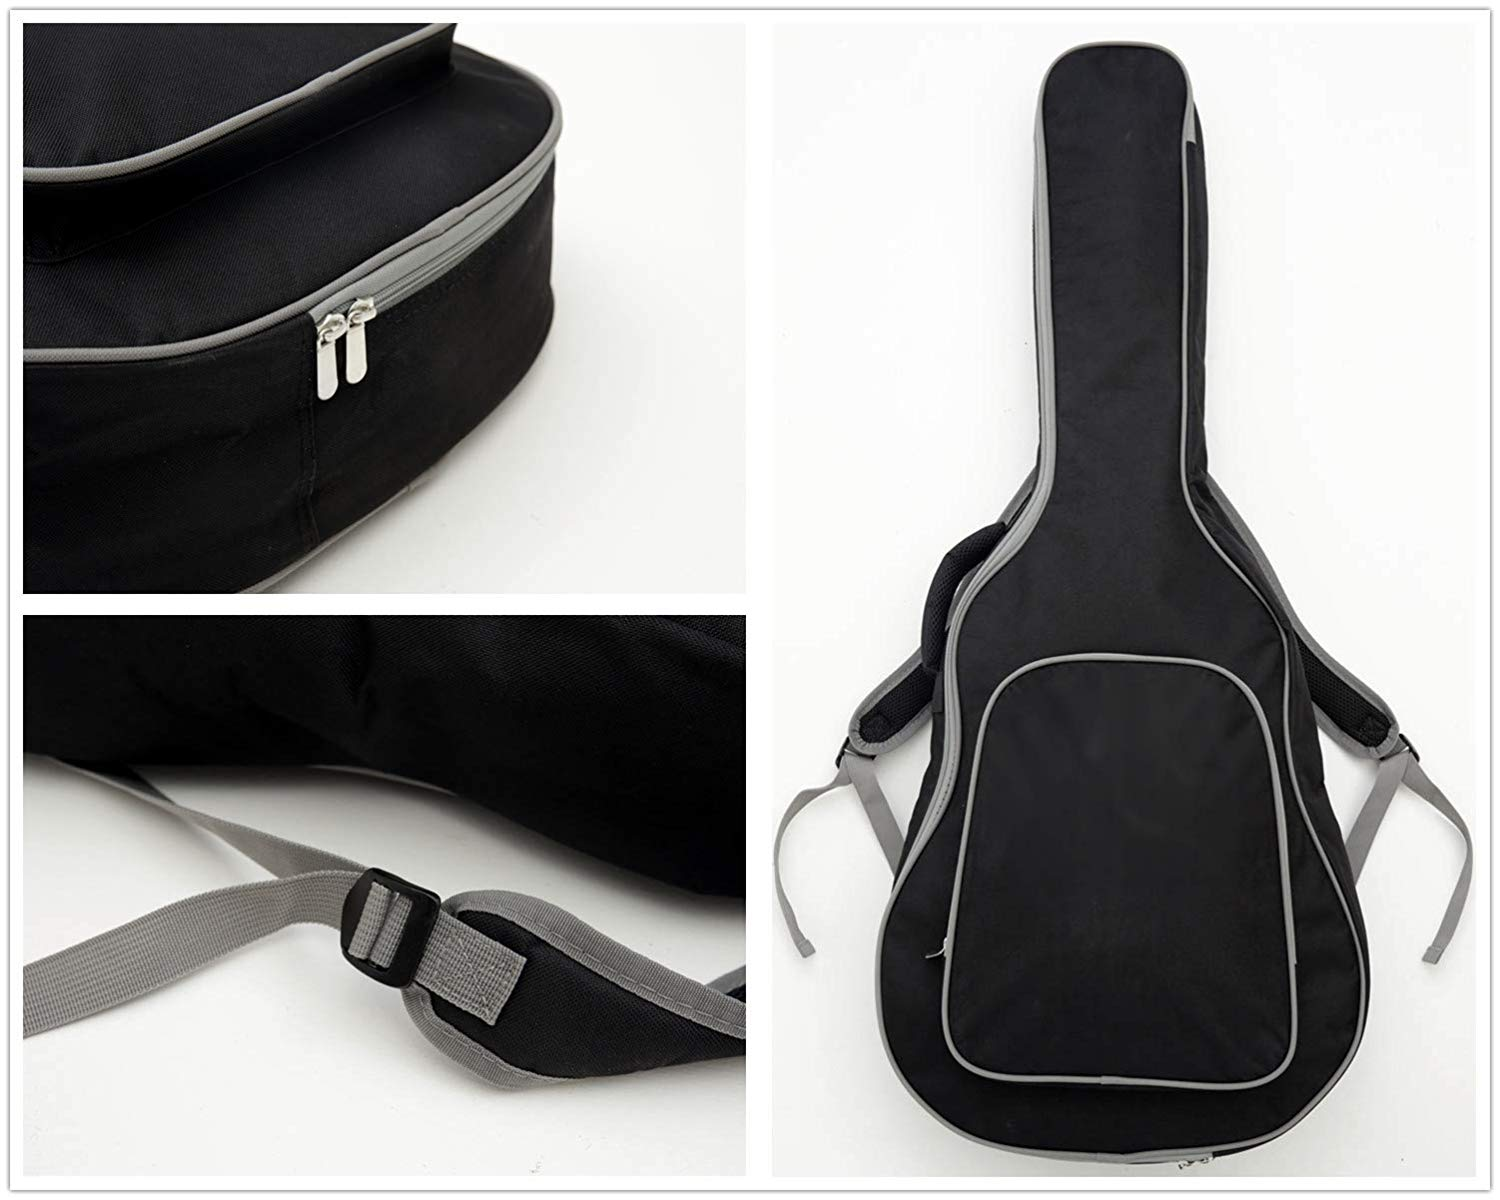 Multiple Views of the Guitar Bag that comes with the Guitar Ranch Full Size Grand Auditorium Acoustic Guitar